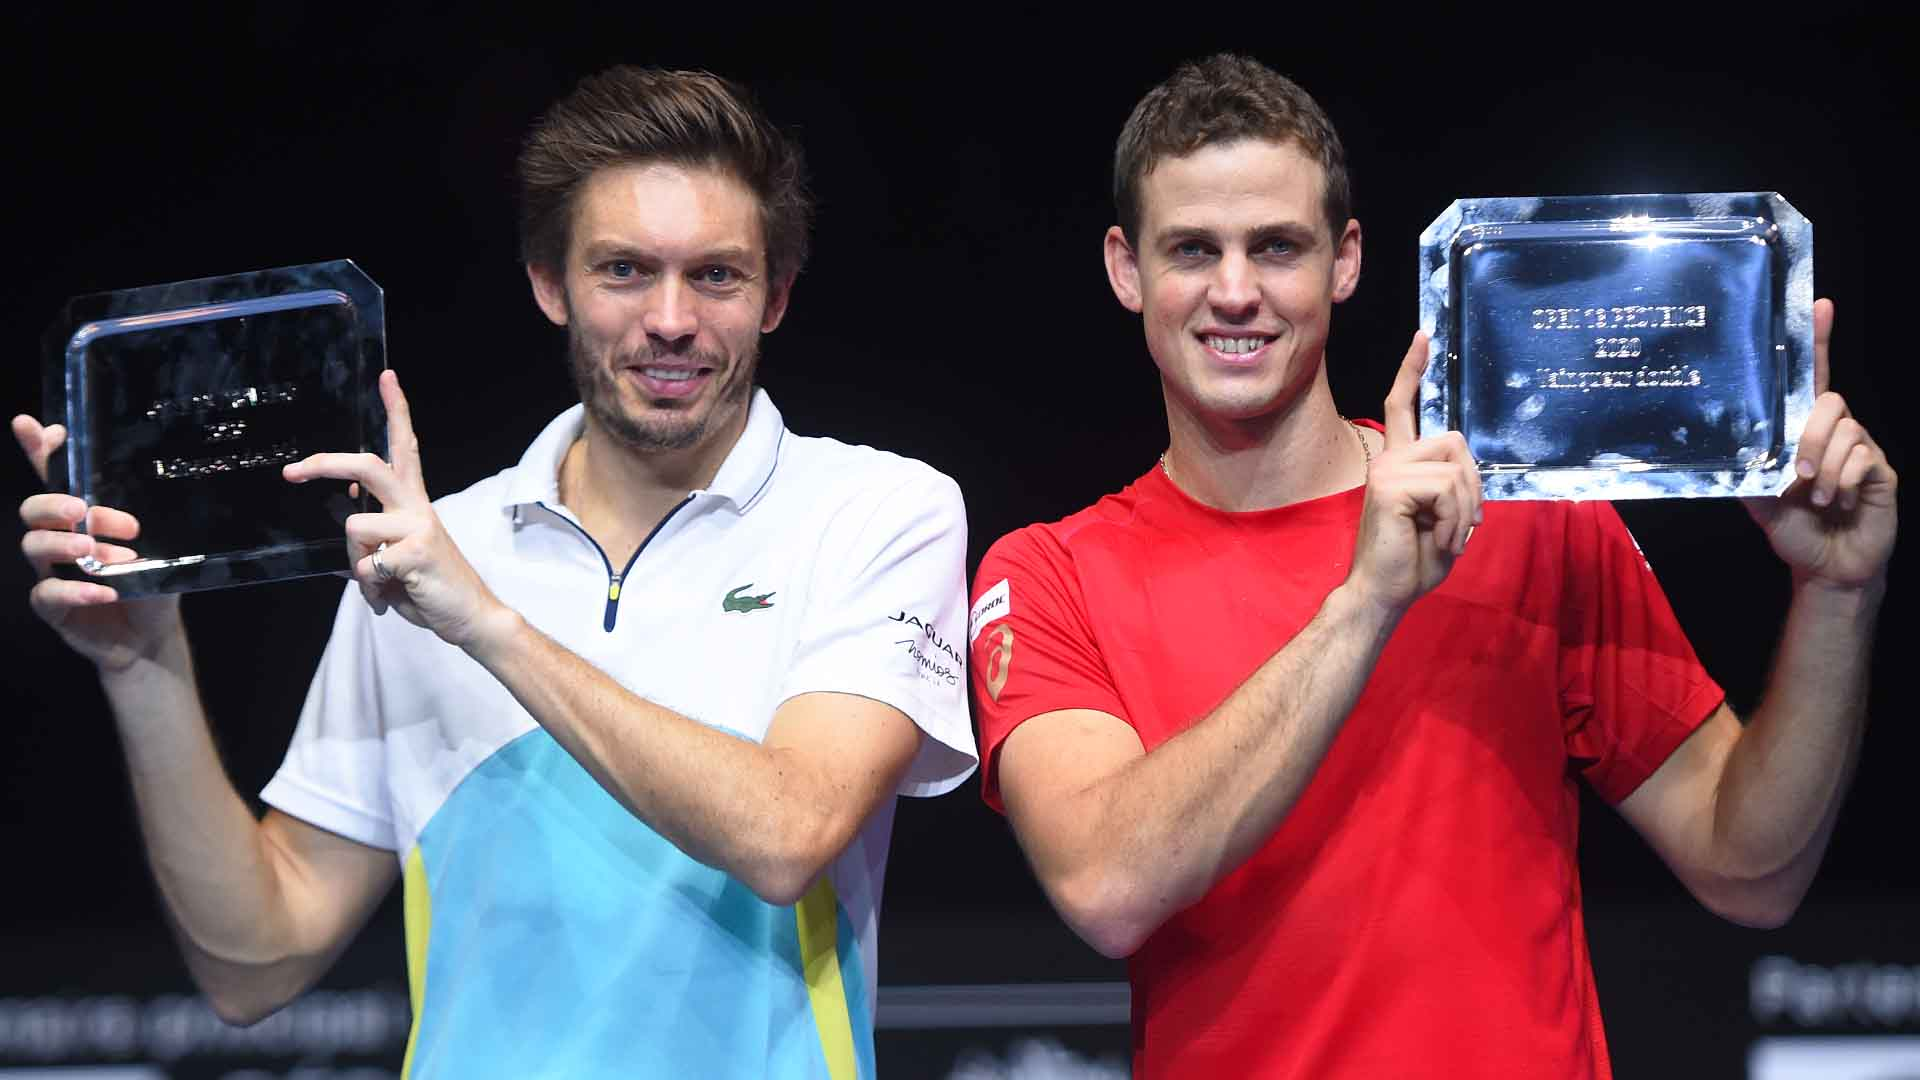 Nicolas Mahut and Vasek Pospisil own an 8-1 team record.